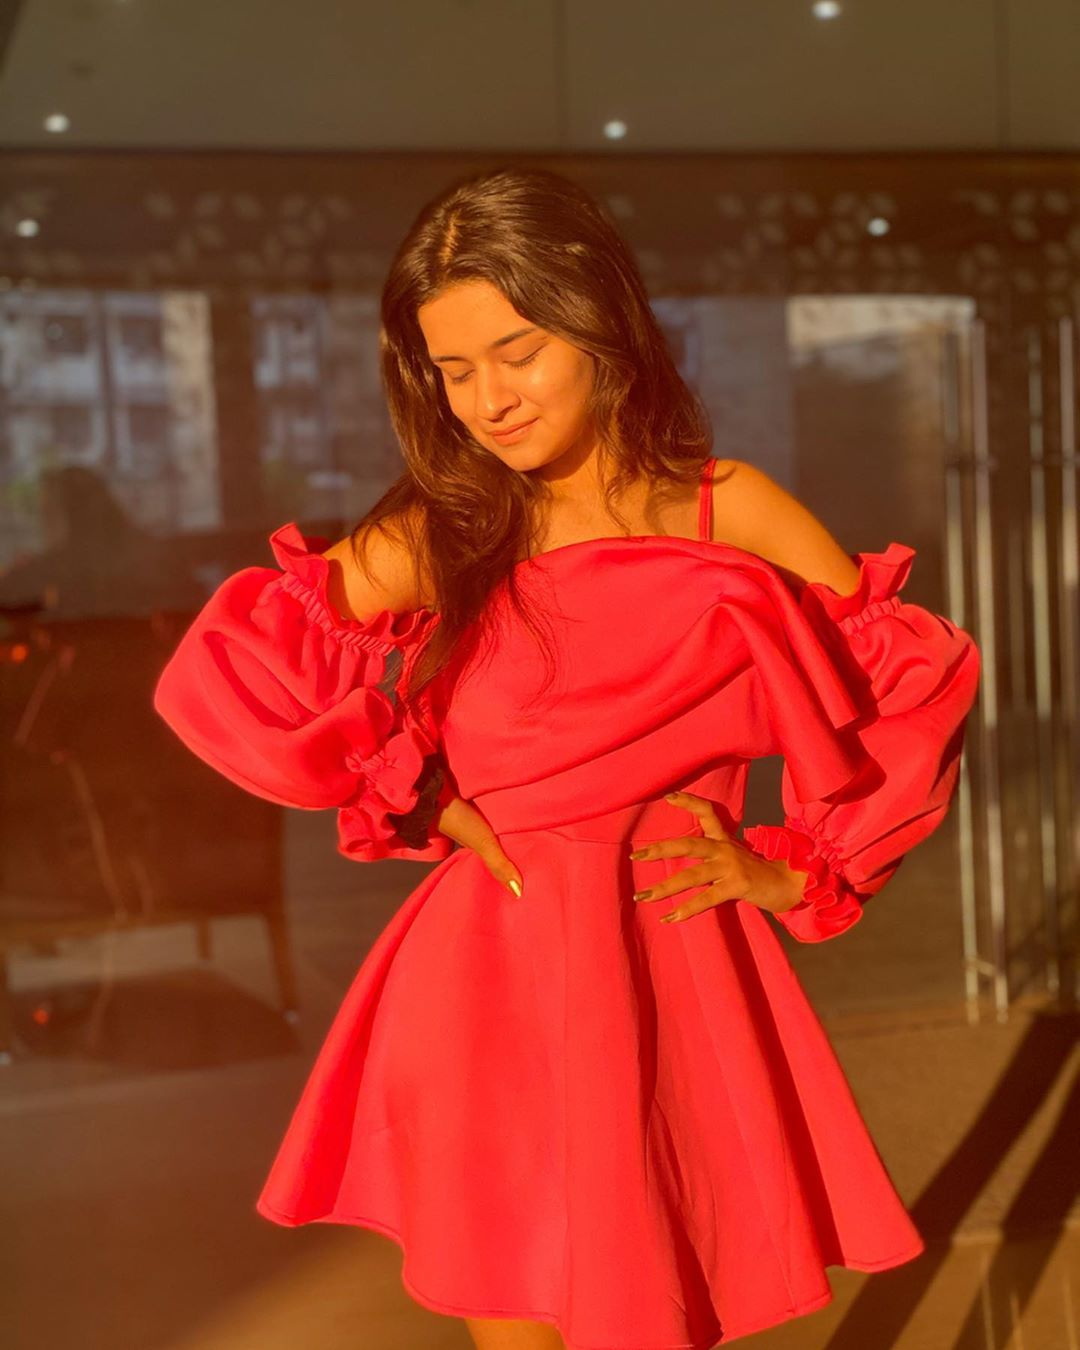 Avneet Kaur Wallpapers, Photos, Images &Amp; Pictures My Happy Dance When I Get To Know We're A Family Of 8 Millionnnnnnnnnn Love You